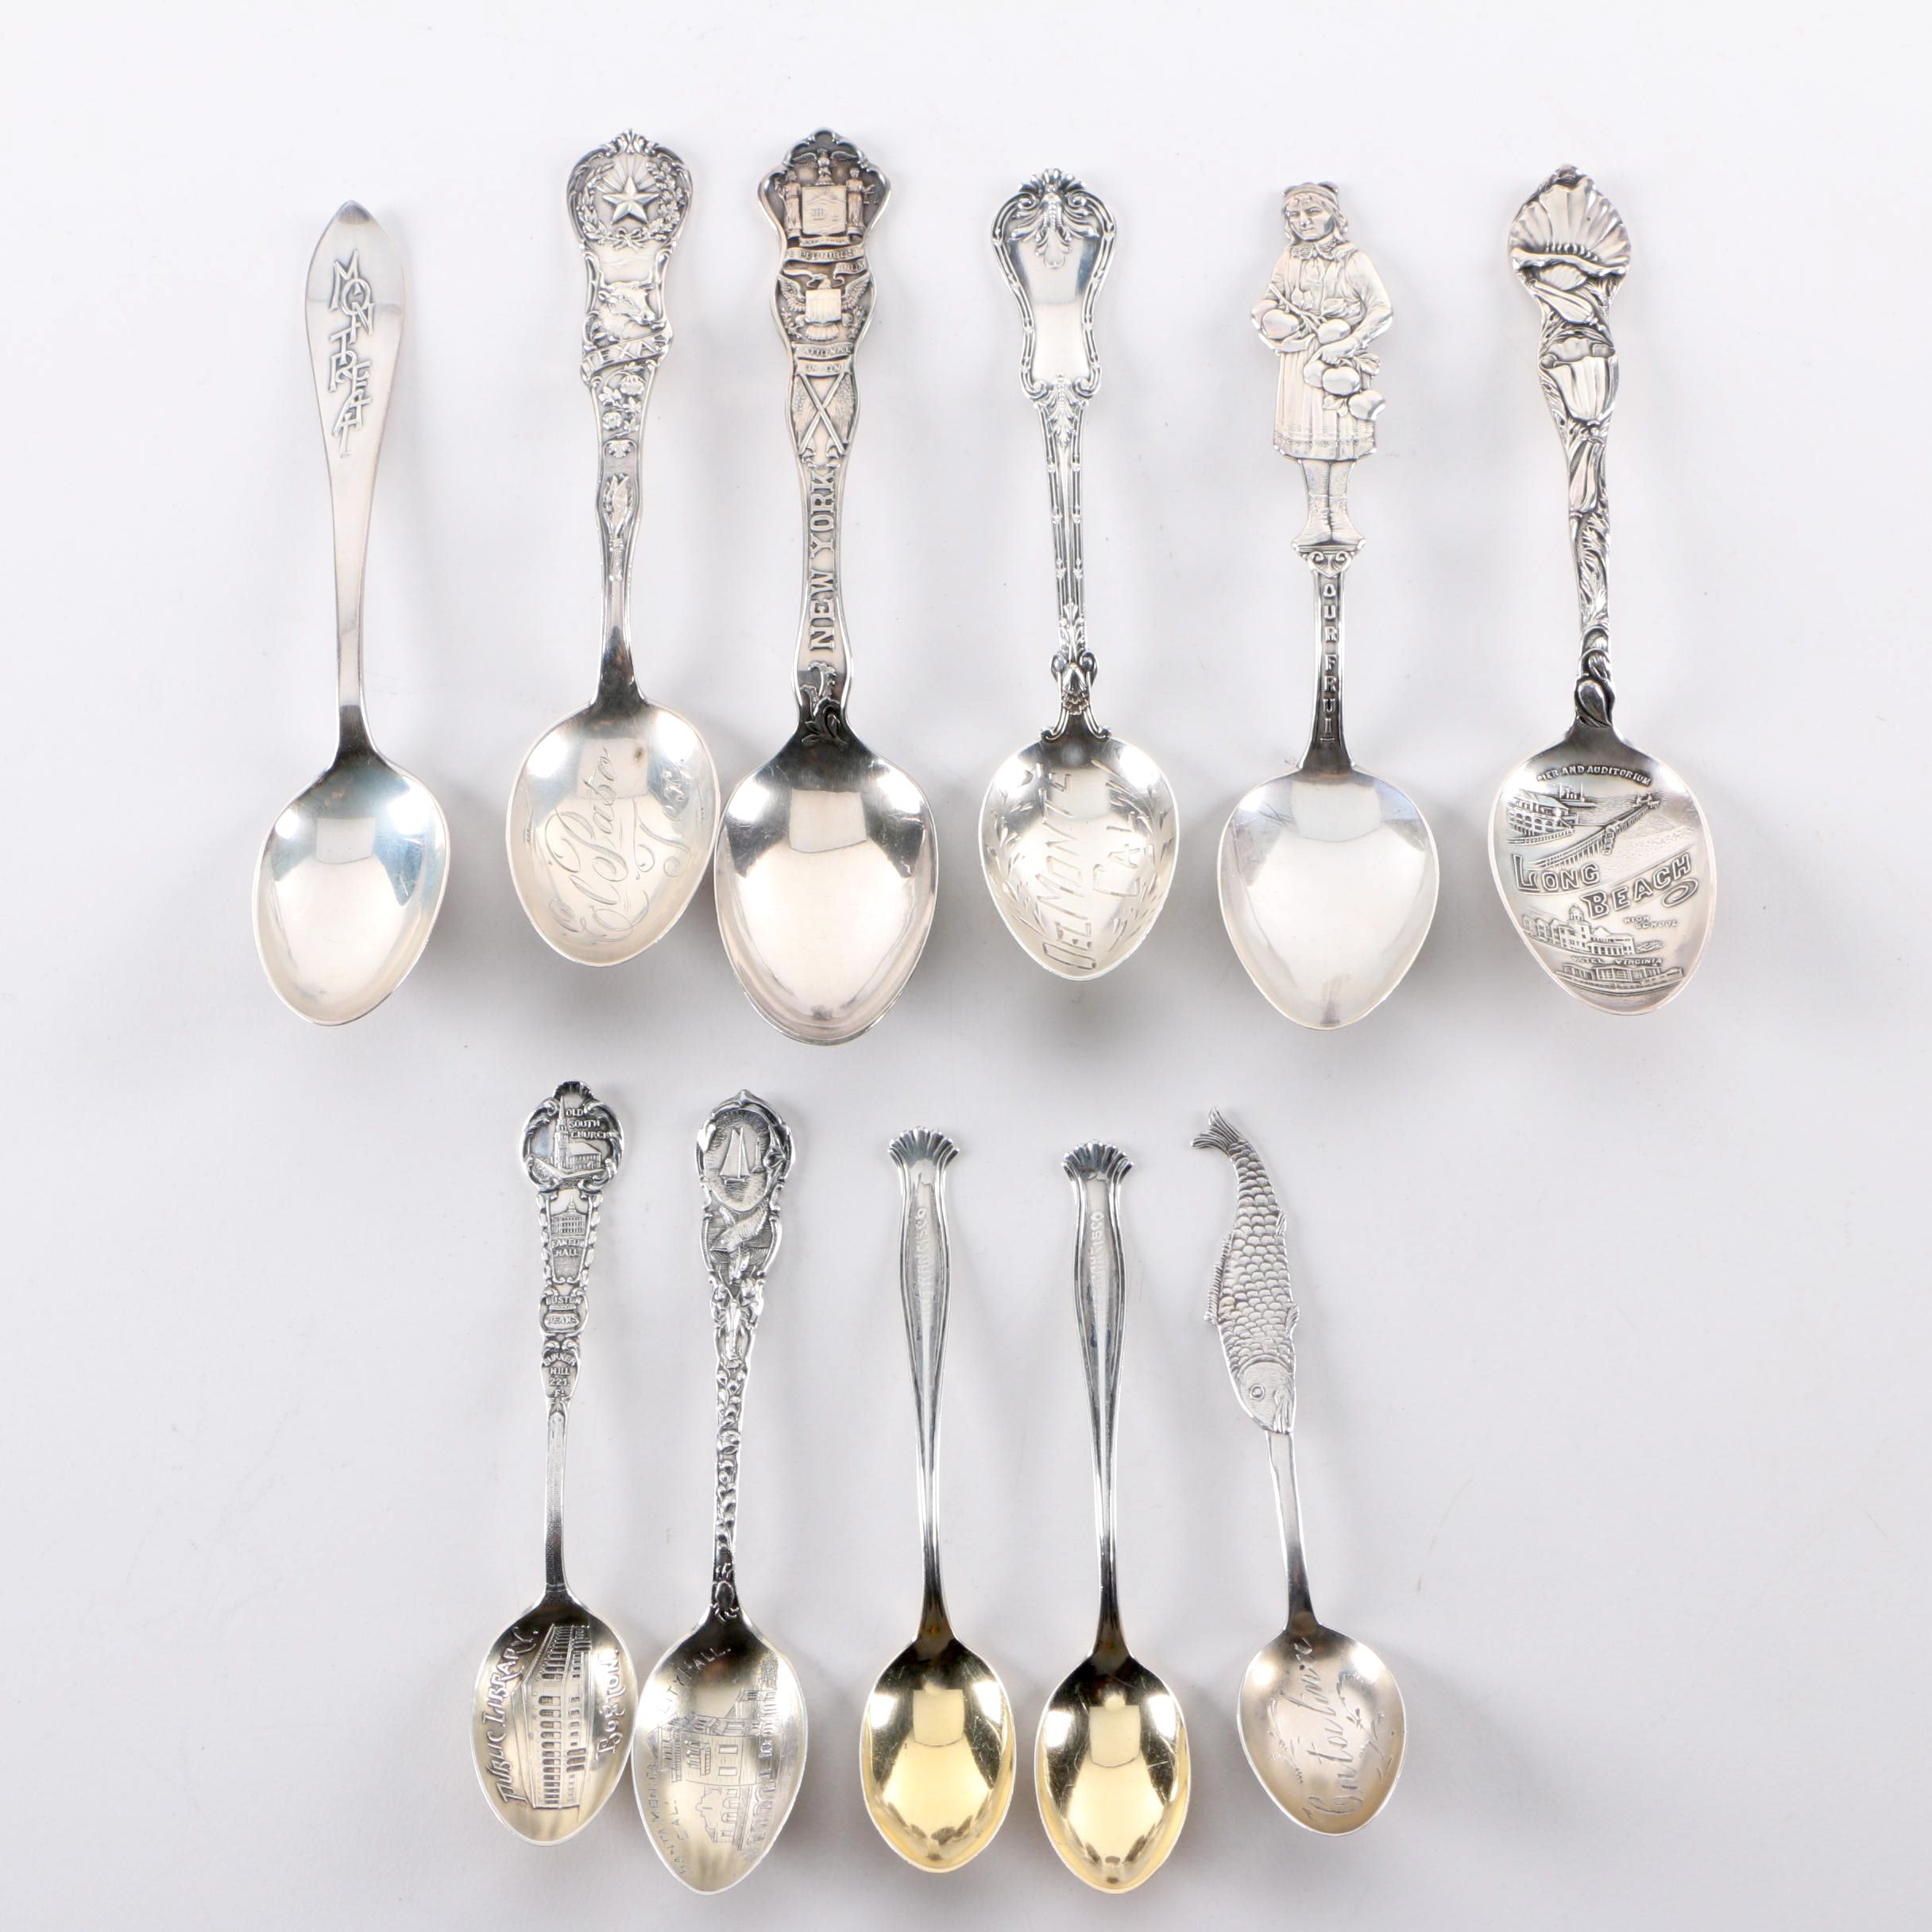 Gorham and Other Sterling Silver Souvenir Spoons with Silver-Plated Spoon